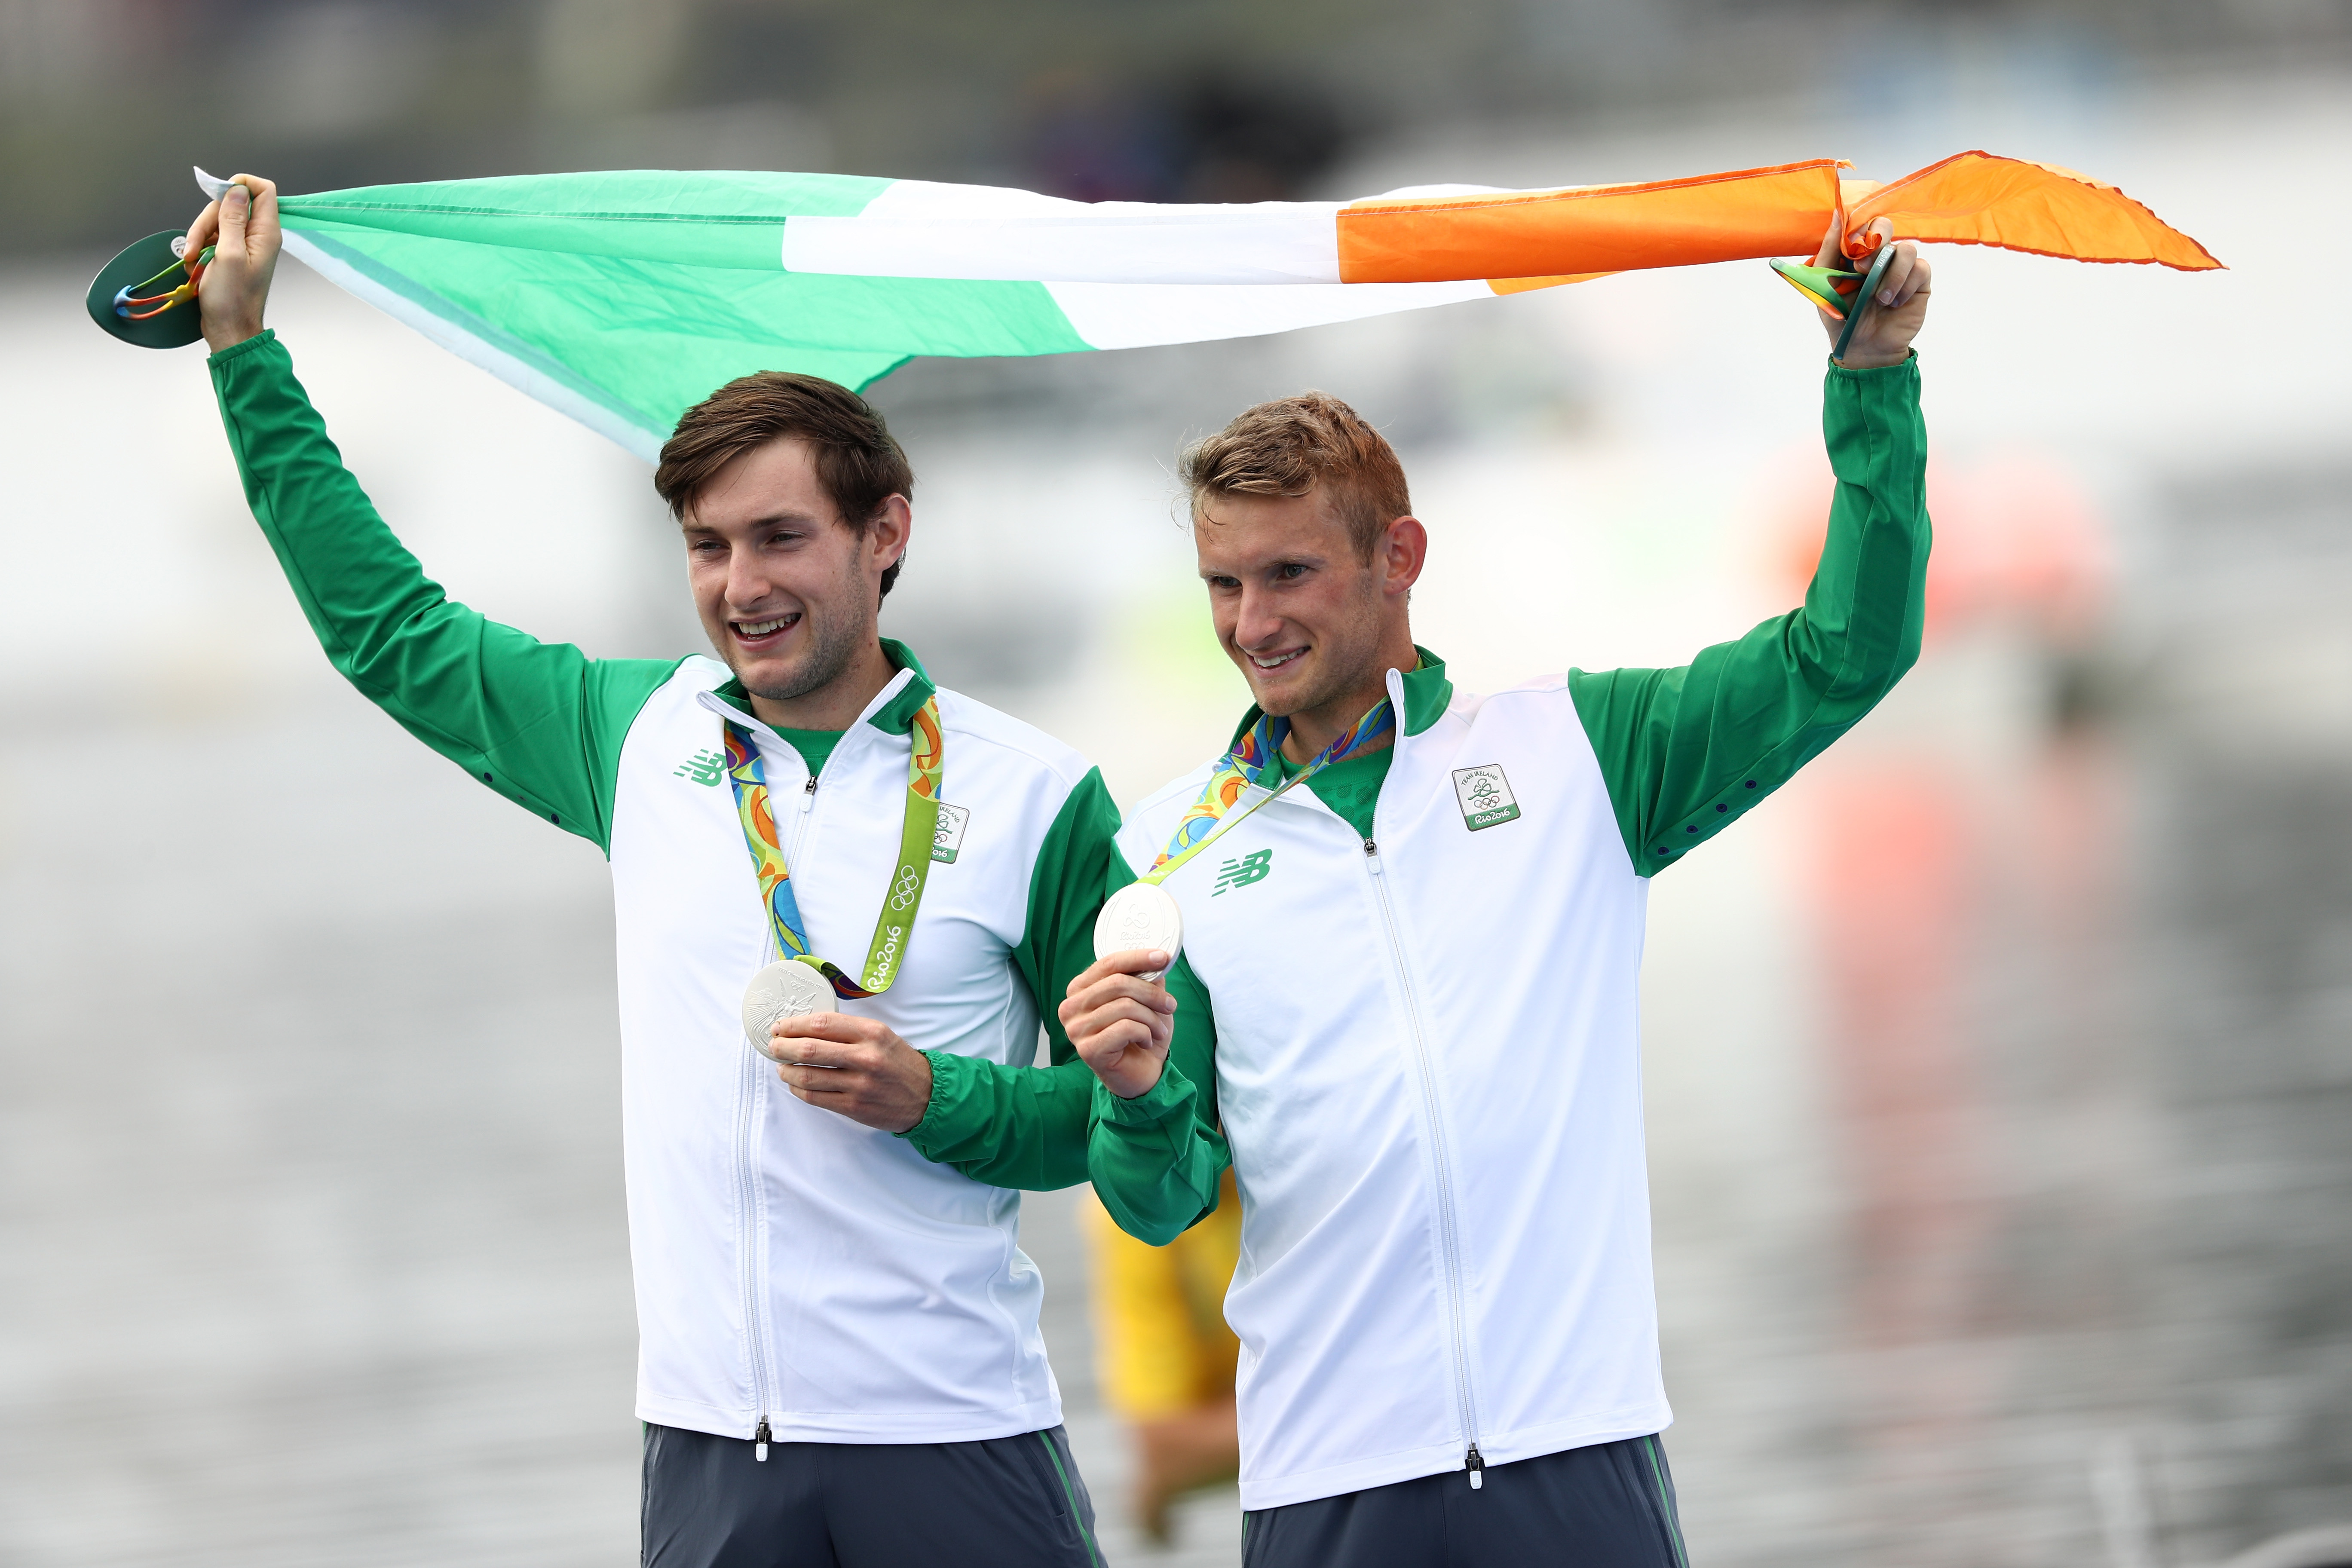 Irish Rowers Win The Internet After Bizarrely Hilarious Interview GettyImages 588665560